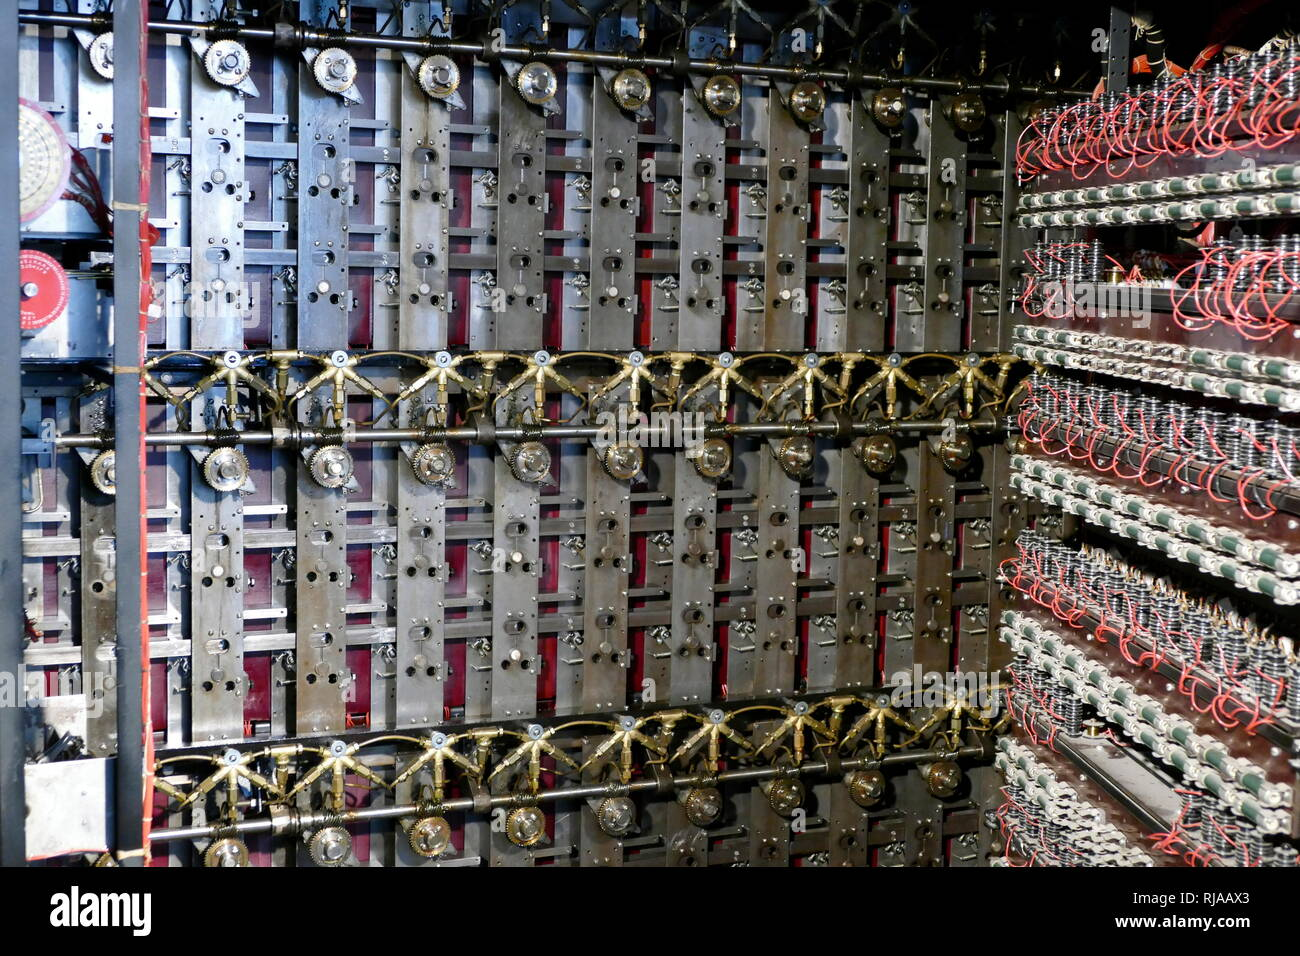 Rear view of the rebuilt Bombe at Bletchley Park. This shows the patch panels and 26-way cables used to wire up the 'menus'. It includes the 'diagonal boards' which, despite their name, are physically rectangular. The bombe was an electro-mechanical device used by British cryptologists to help decipher German Enigma-machine-encrypted secret messages during World War II. The initial design of the bombe was produced in 1939 at the UK Government Code and Cypher School (GC&CS) at Bletchley Park by Alan Turing, with an important refinement devised in 1940 by Gordon Welchman Stock Photo